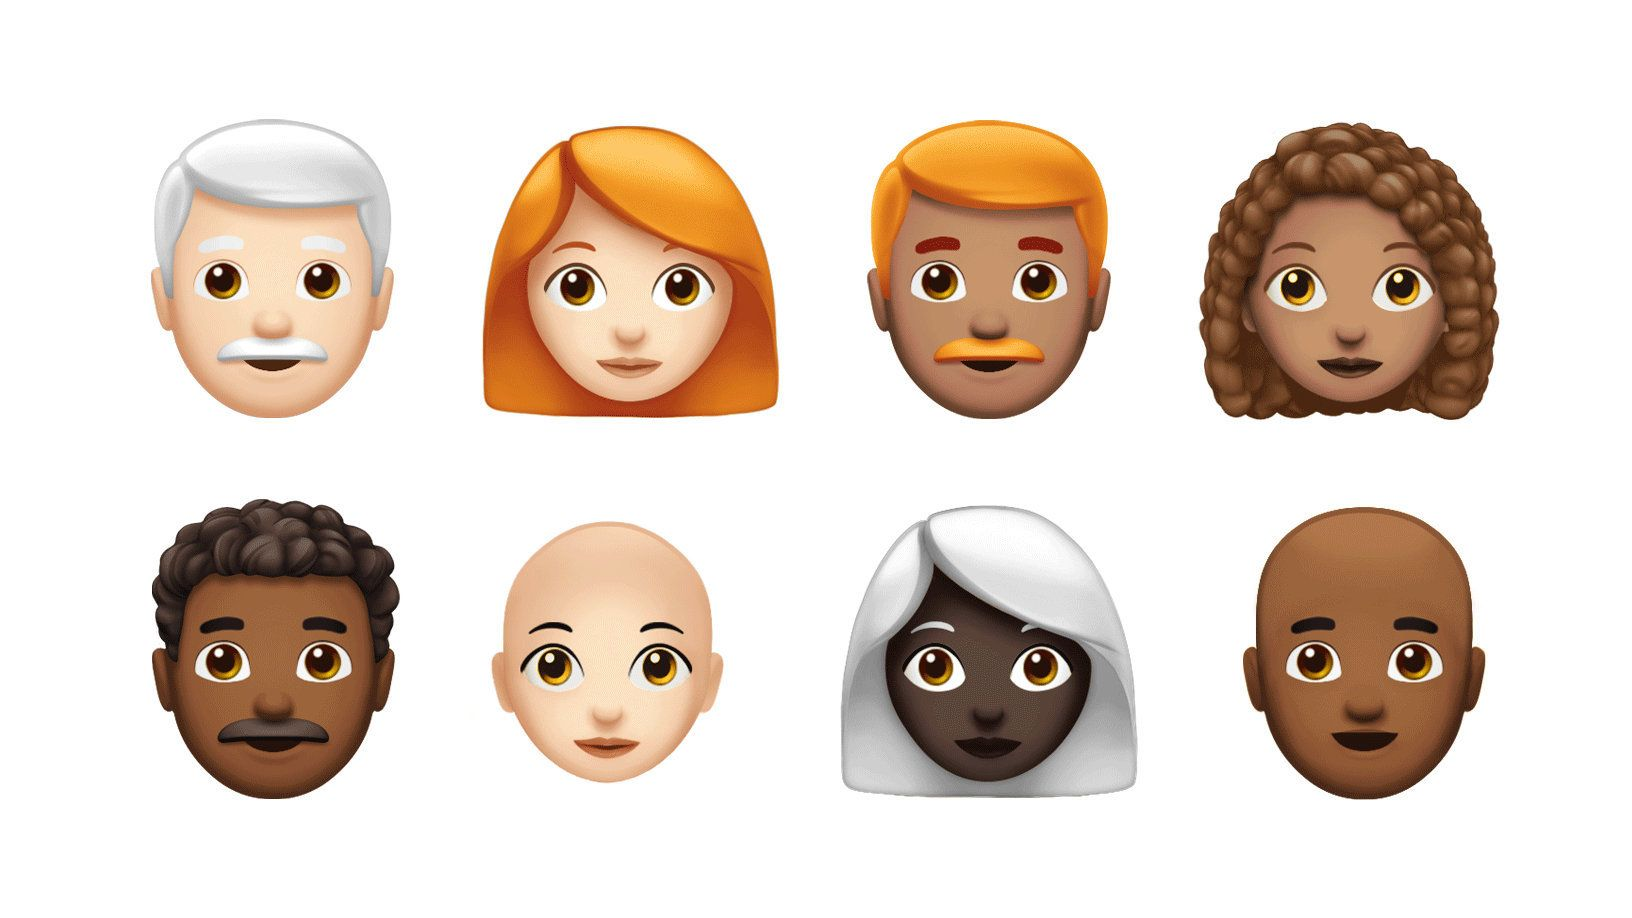 These Are Some Of The New Emojis Coming To Your